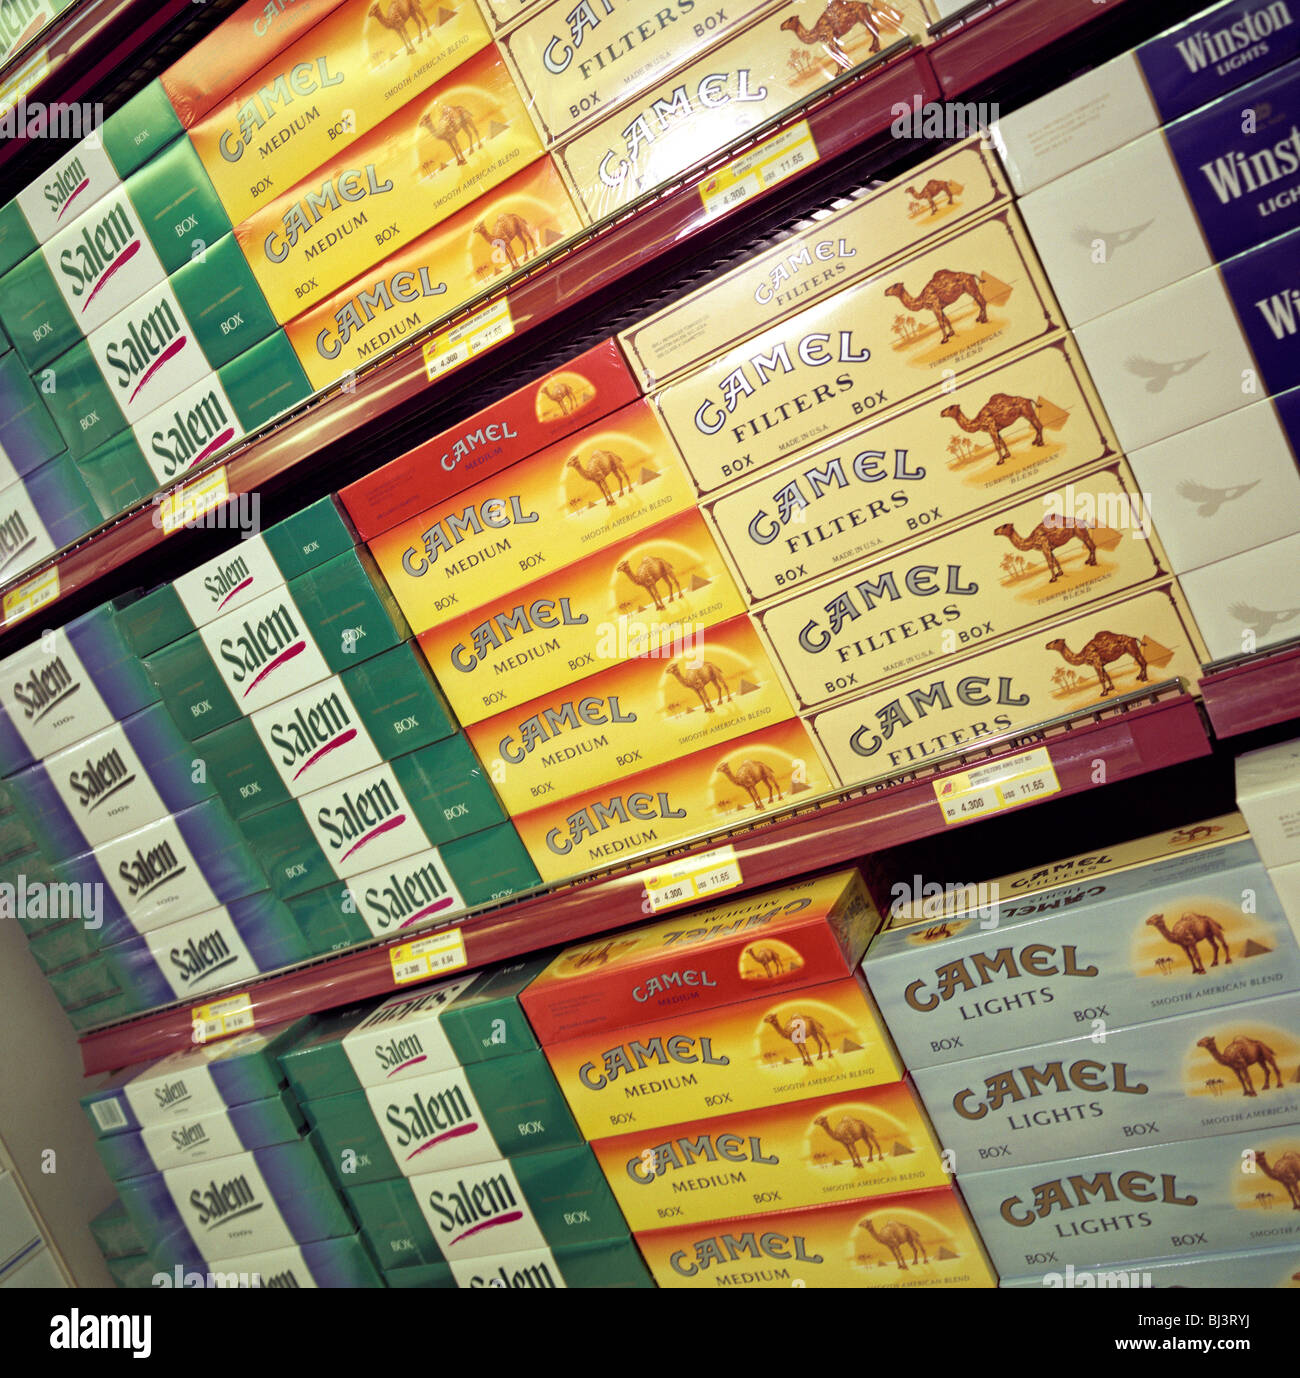 stacks-of-cigarette-cartons-are-piled-up